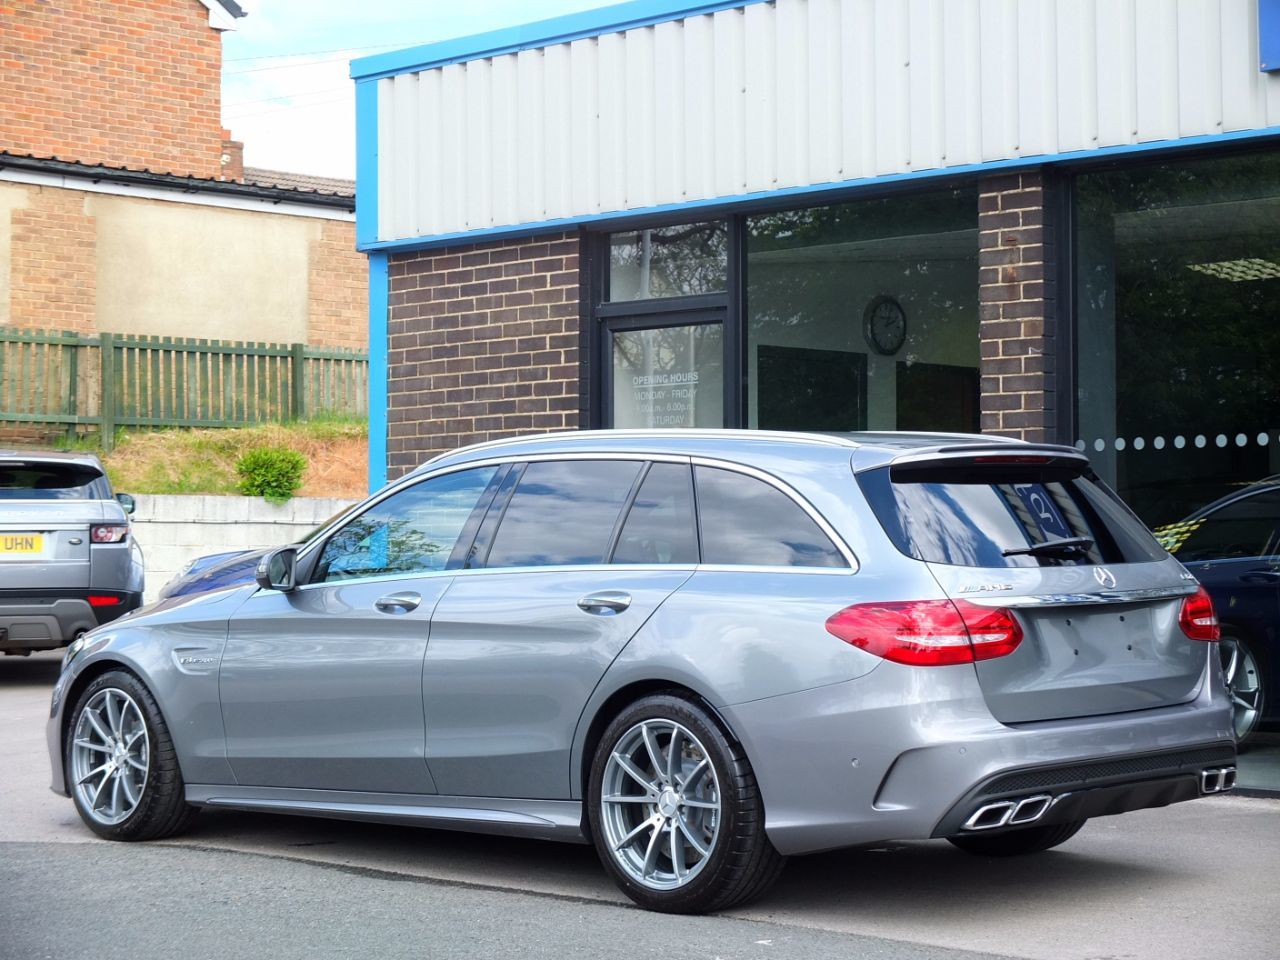 Mercedes-Benz C Class C63 AMG 4.0 V8 Twin Turbo Premium Estate Auto Estate Petrol Palladium Silver Metallic